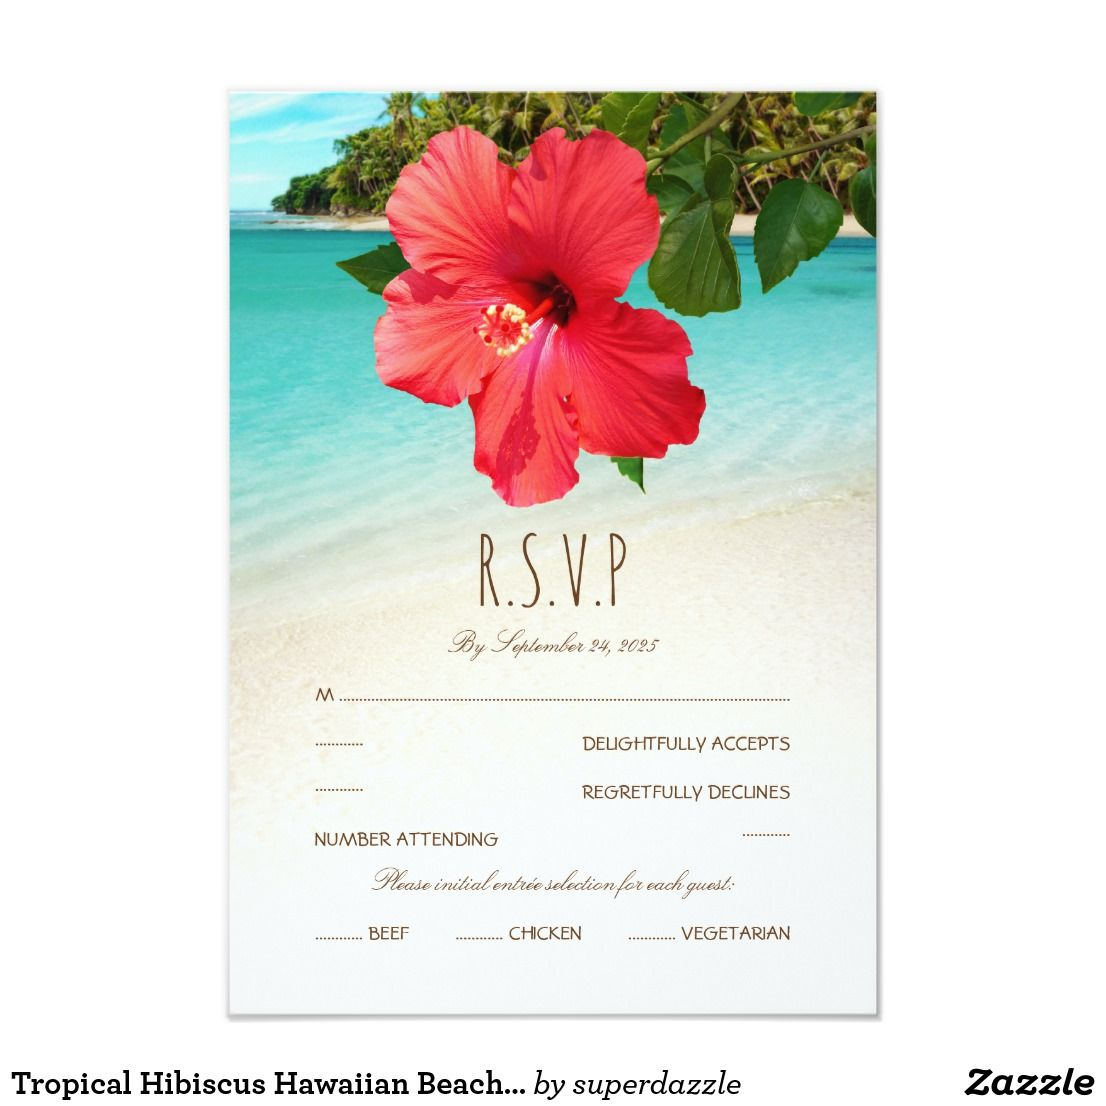 Tropical Hibiscus Hawaiian Beach Themed Wedding Card | Coconut palm ...